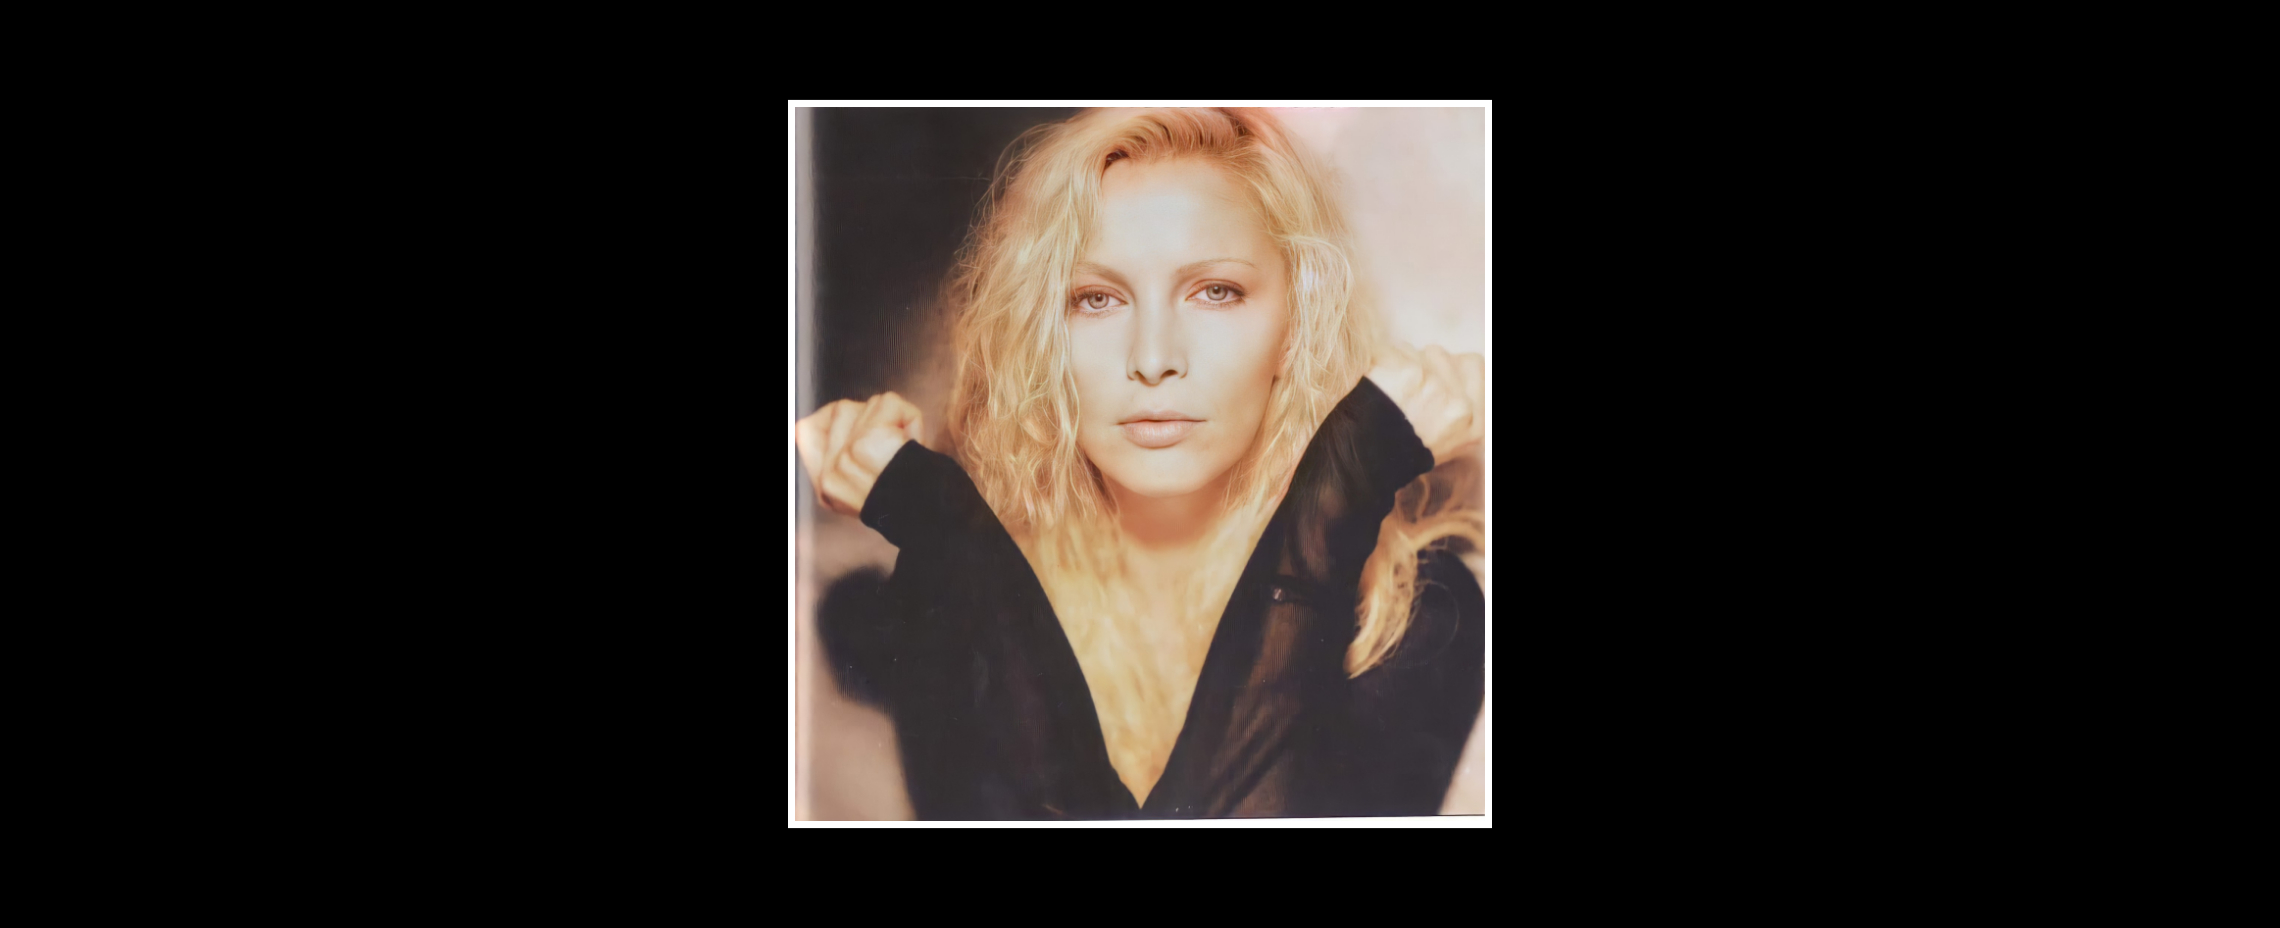 Patty Pravo OLTRE L'EDEN PHOTO SHOOTING 1989